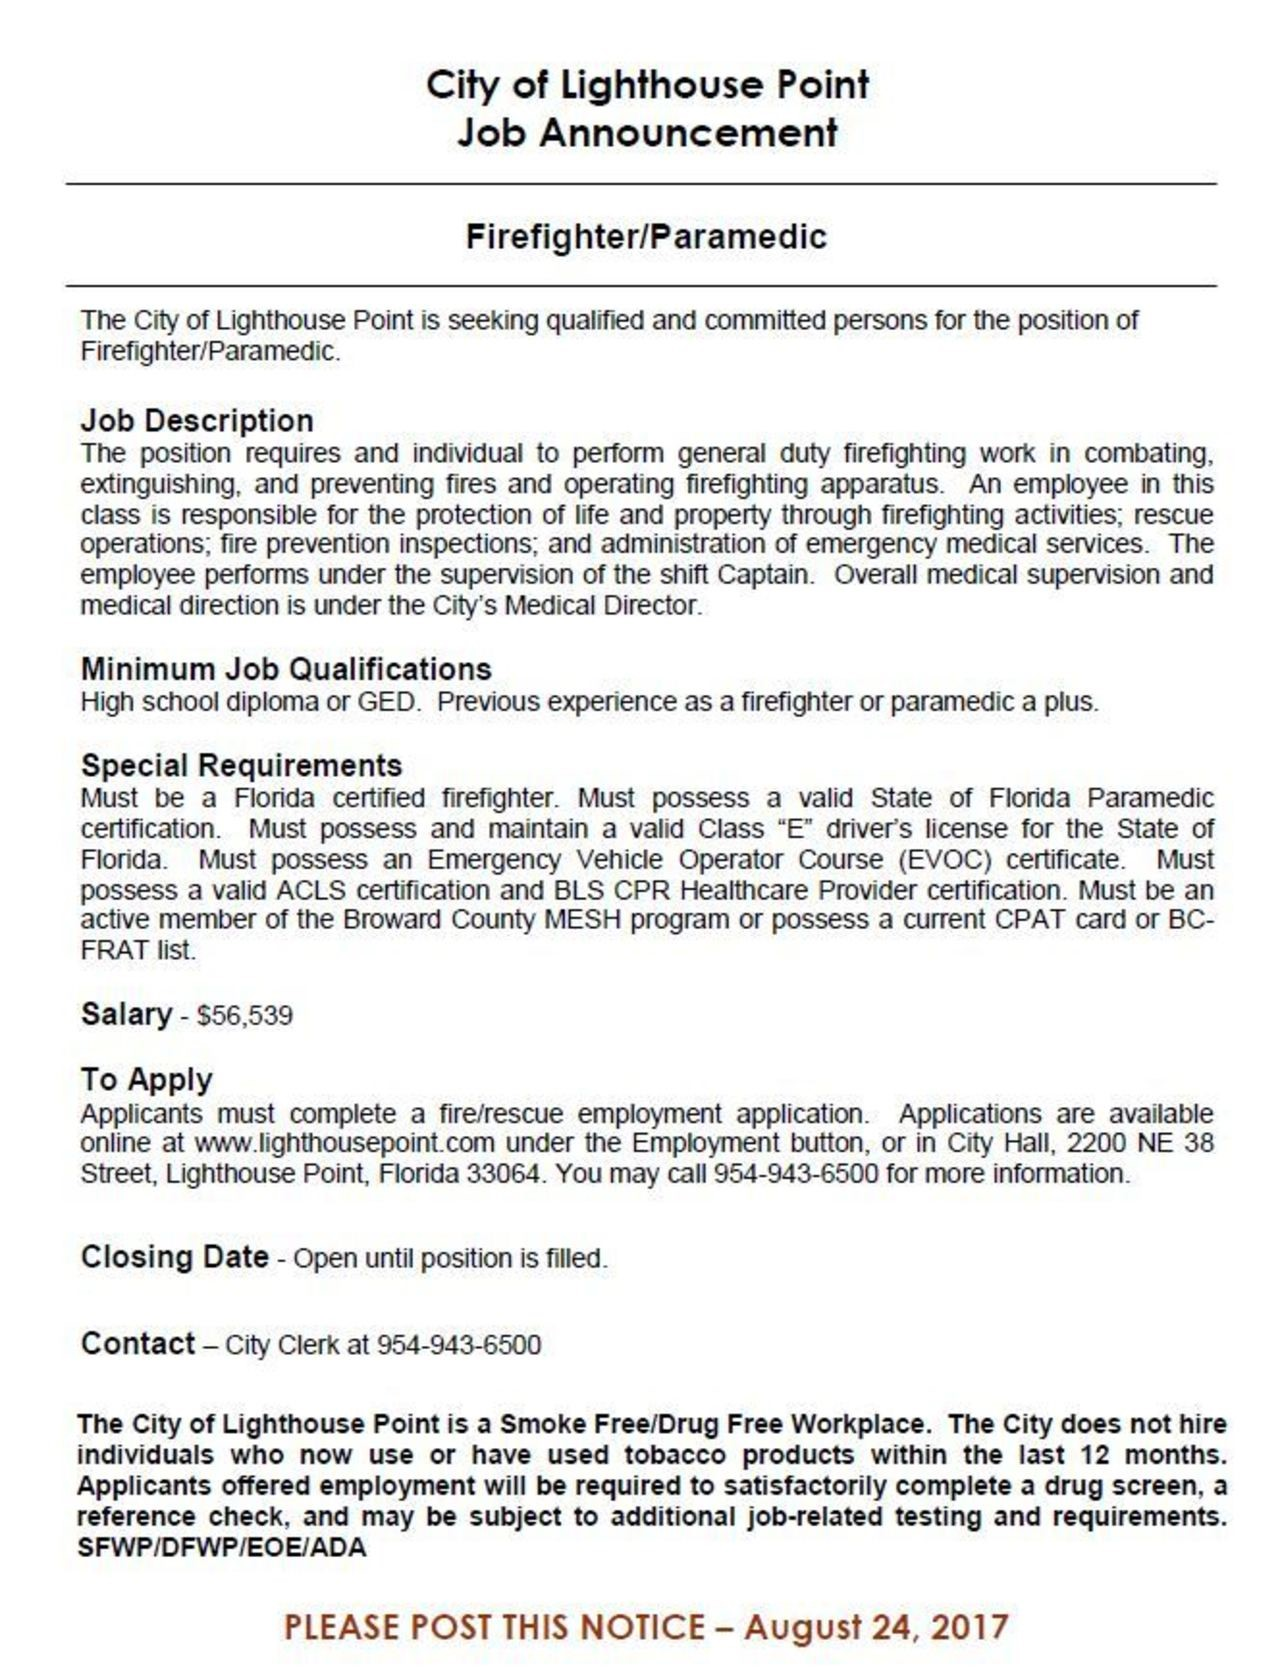 City of Lighthouse Point Hiring FF/Paramedic